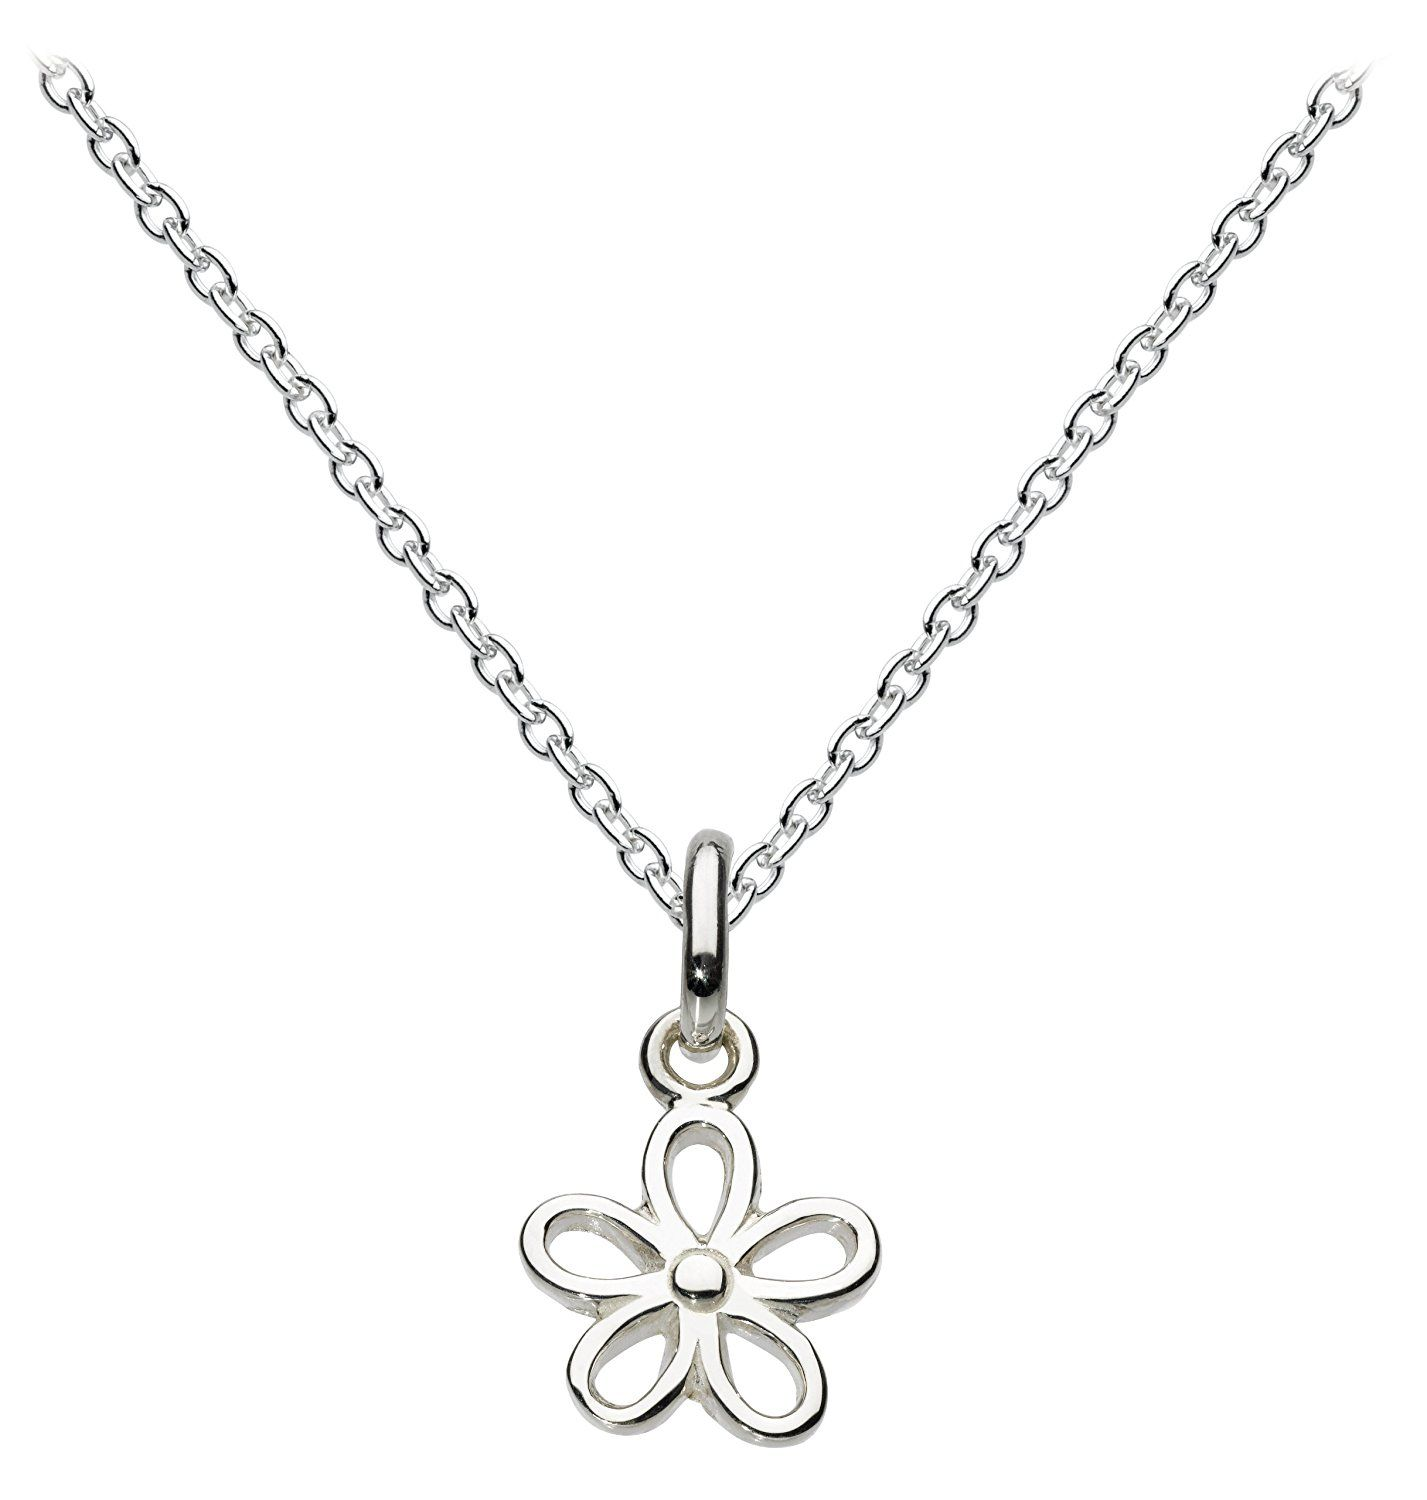 Dew Women's Sterling Silver Engraved Cross Necklace of Length 18 inch tfmWsD1